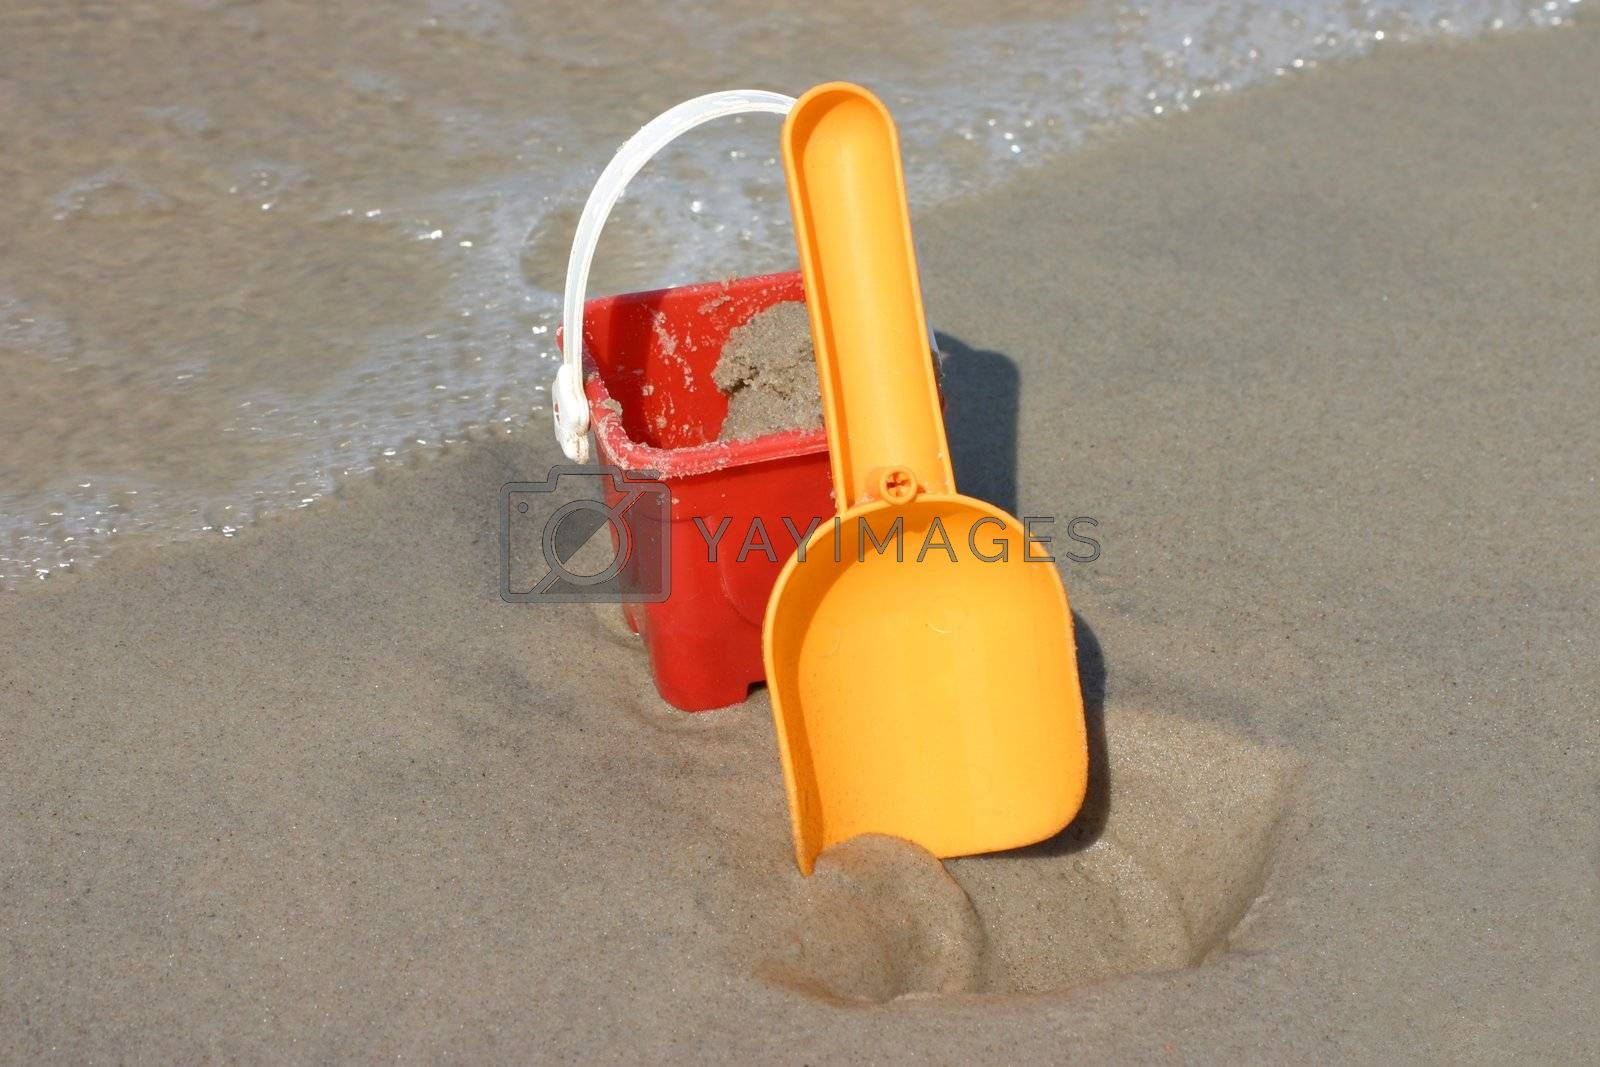 Toy bucket and shovel by Cebas